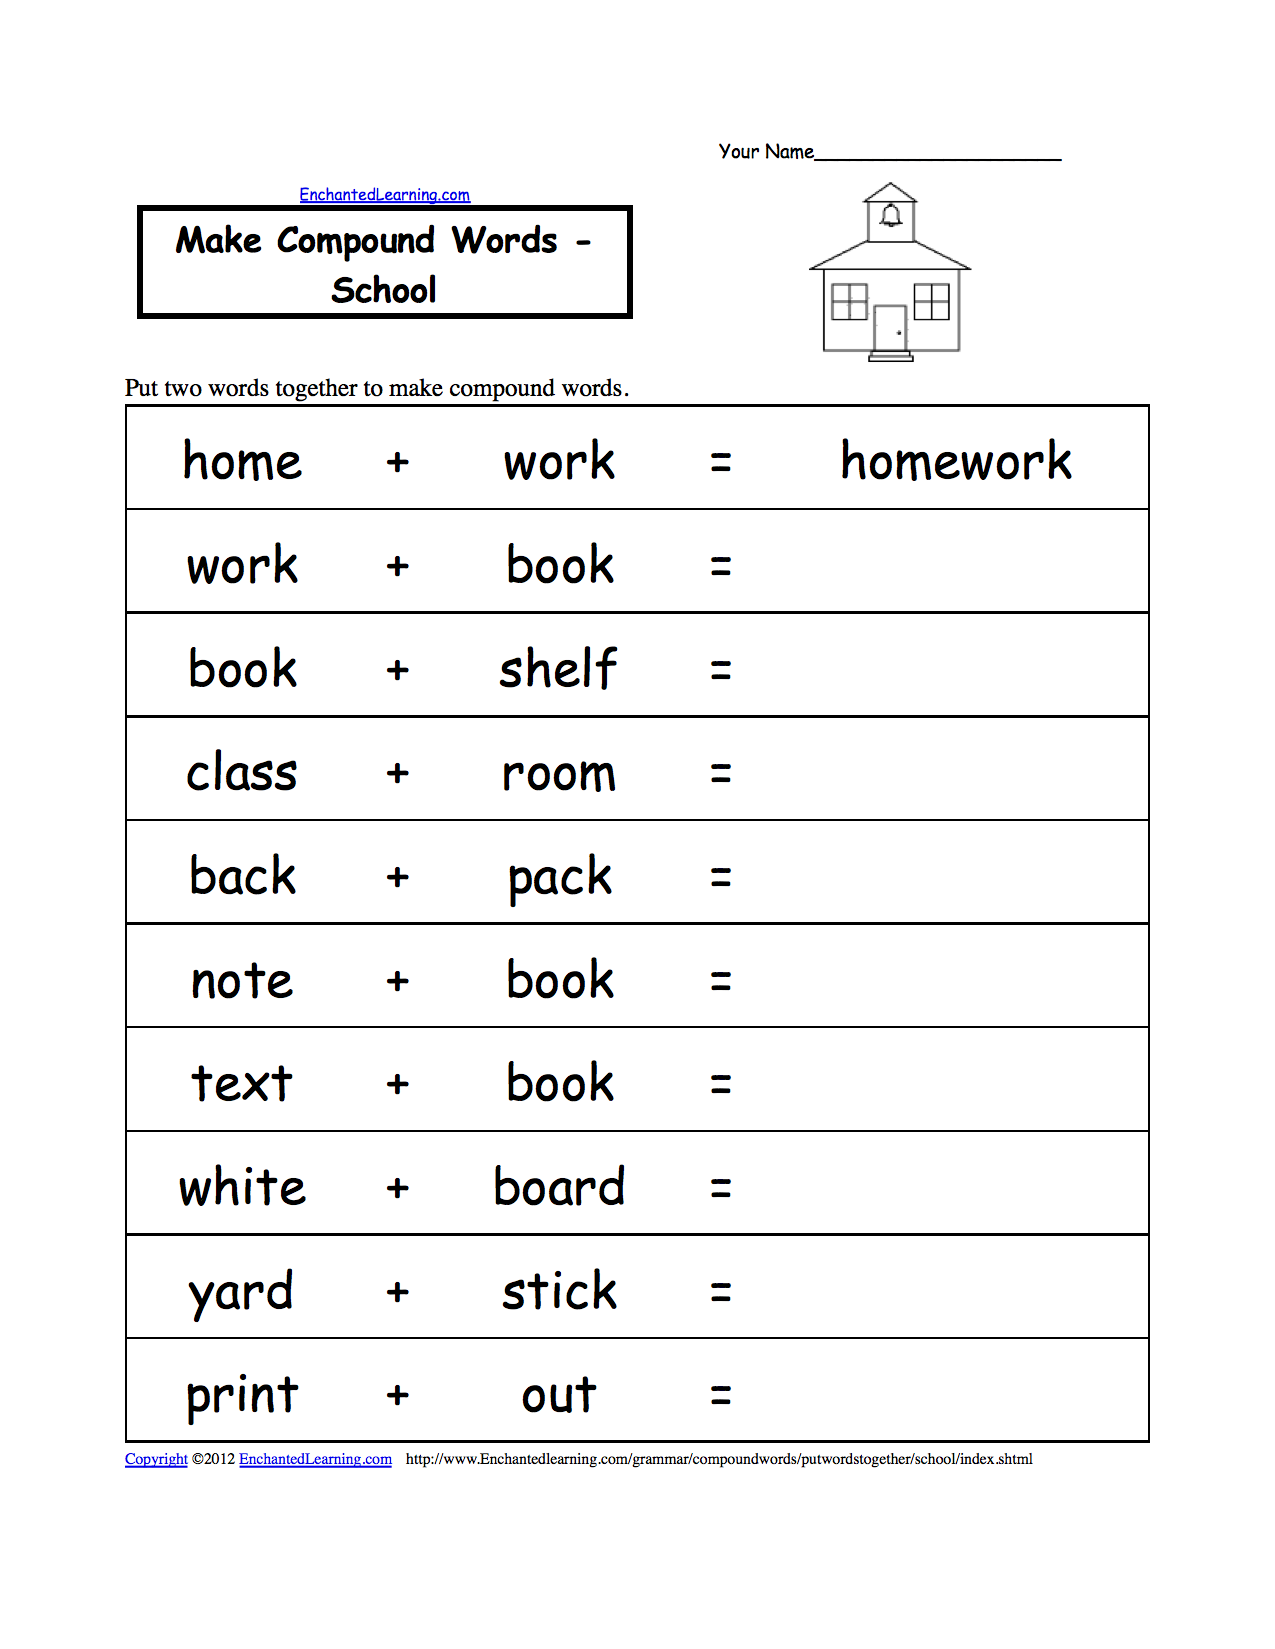 Worksheets Compound Words Worksheets make compound words printable worksheets enchantedlearning com words